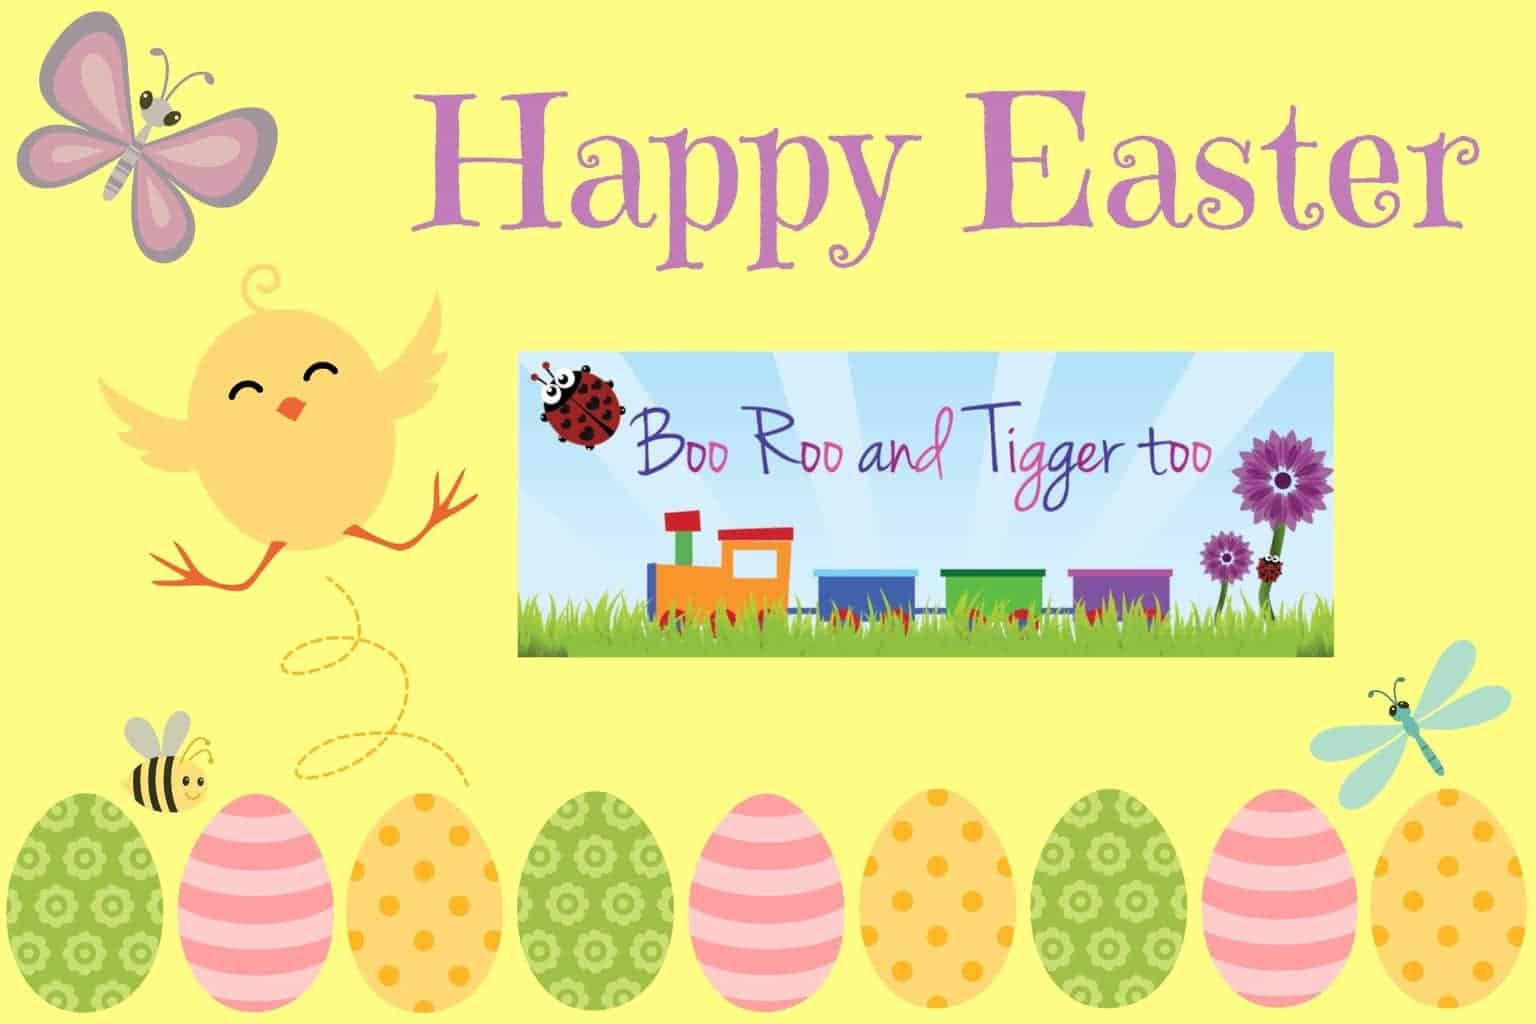 Happy Easter from Boo Roo and Tigger Too